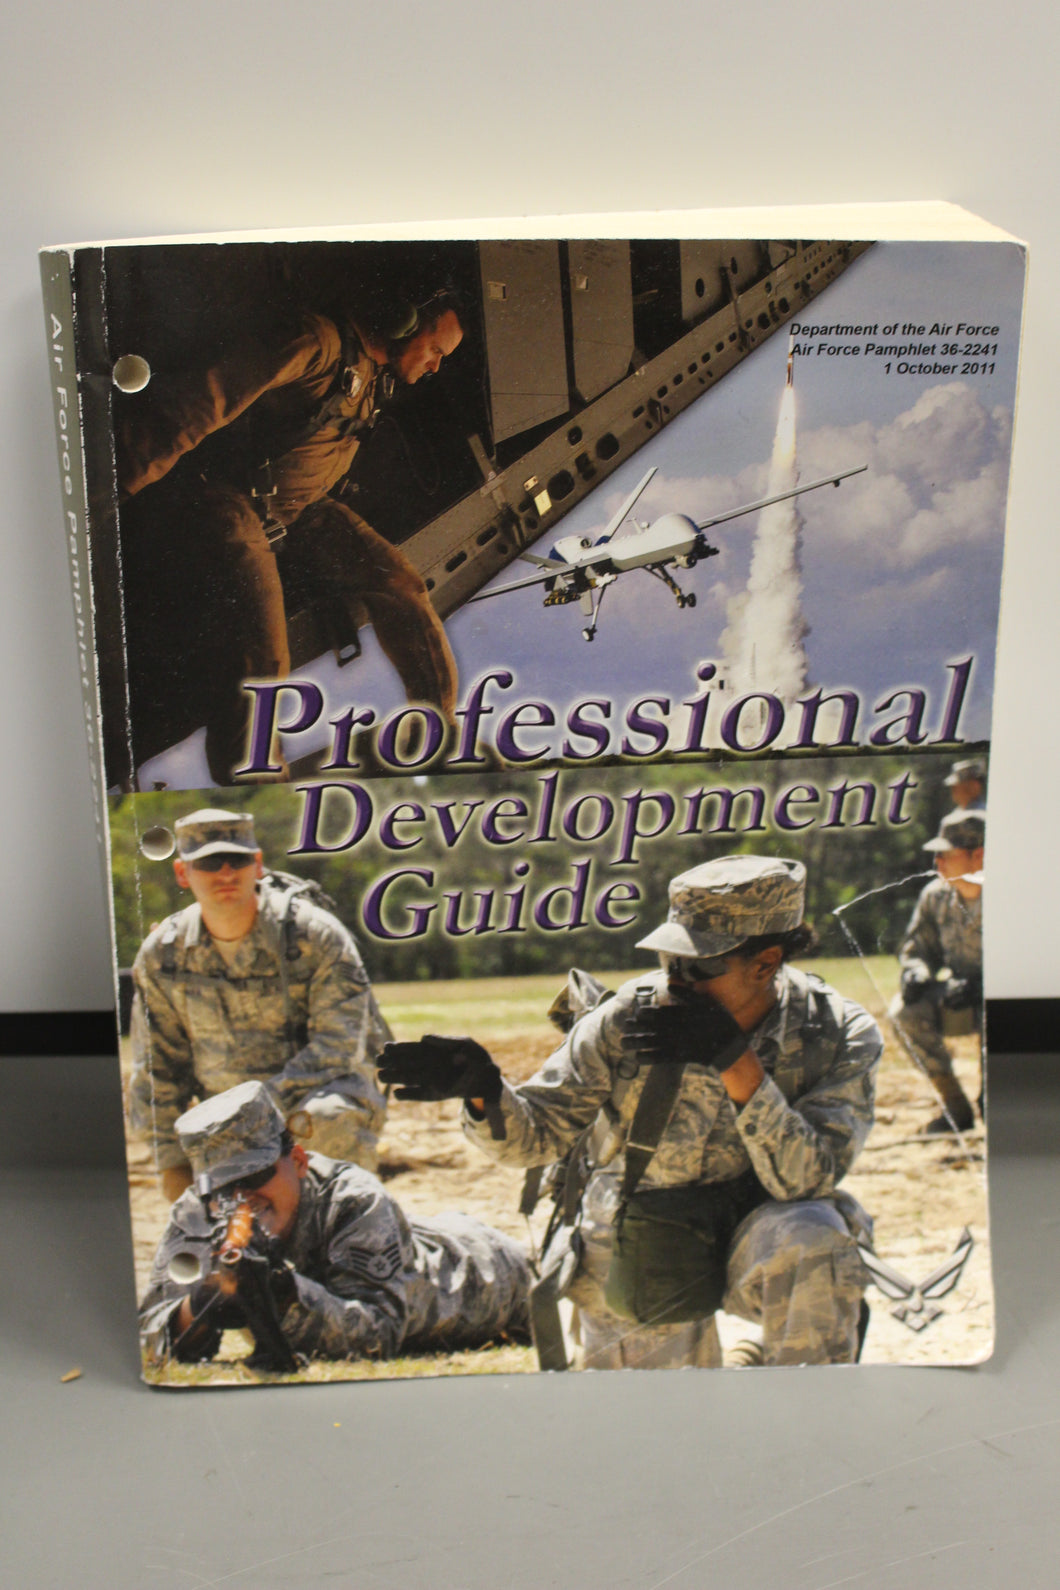 US Air Force Professional Development Guide Book, Pamphlet 36-2241, 1 Oct 2011